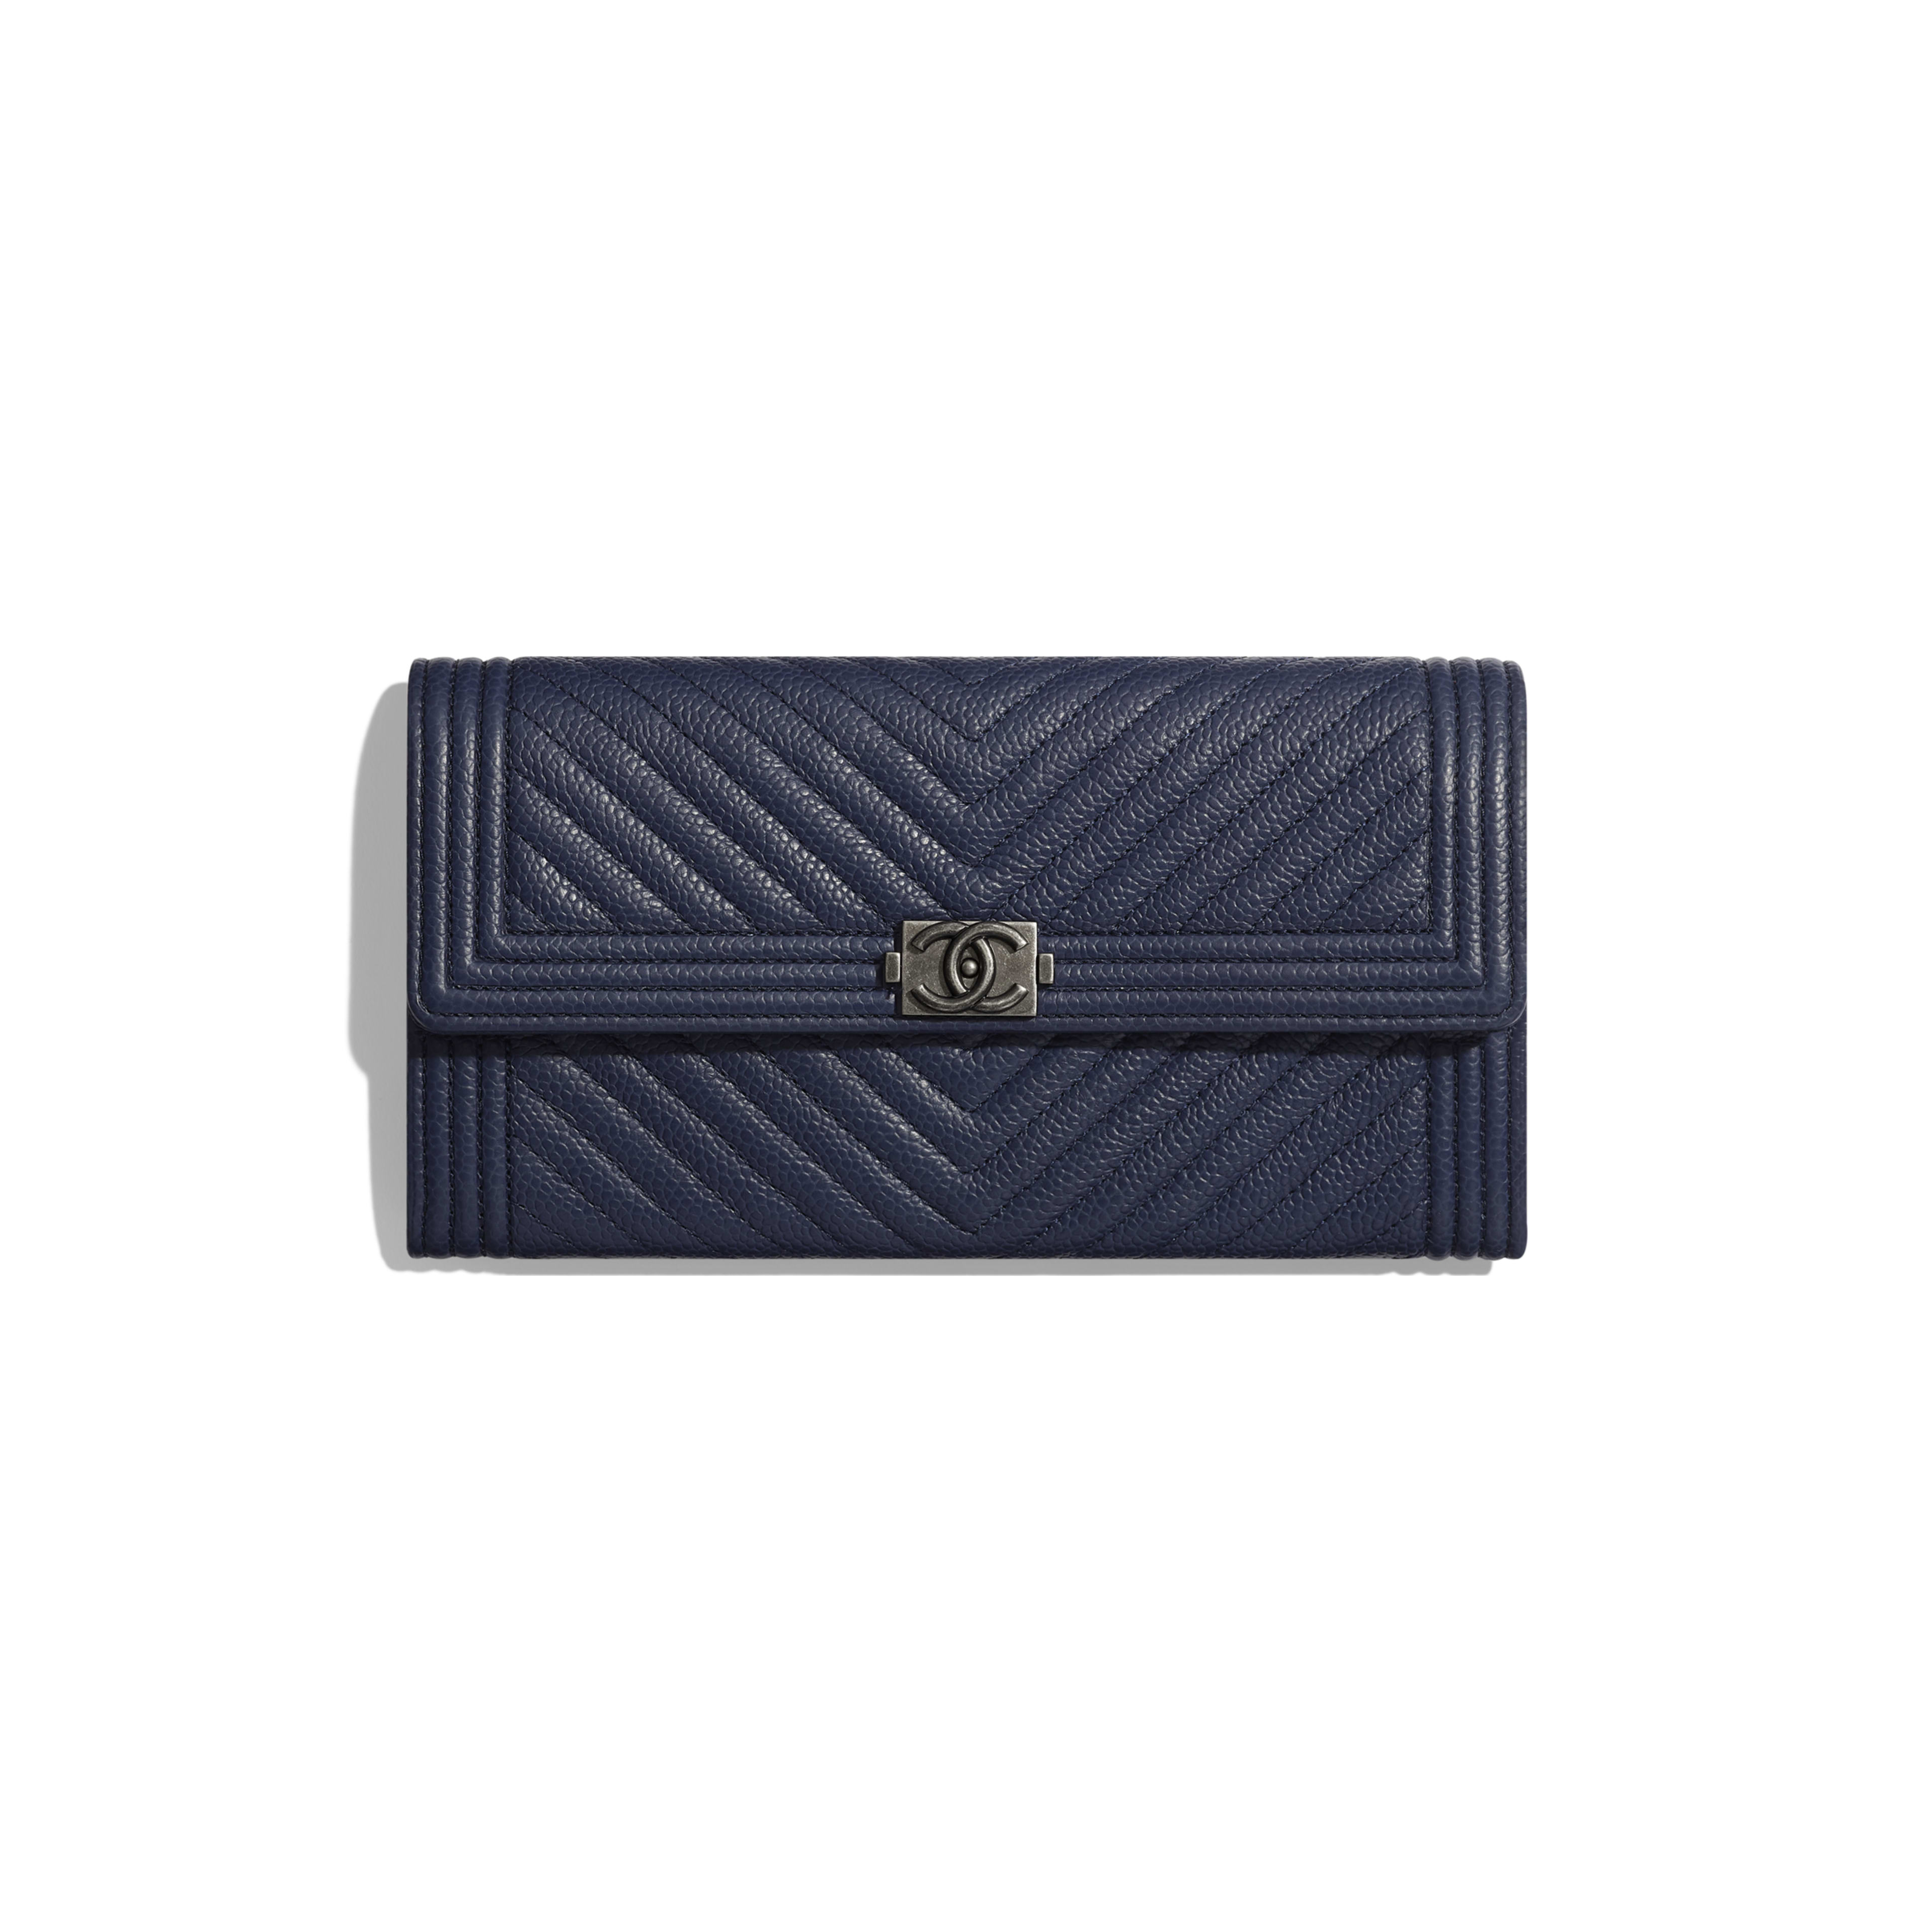 BOY CHANEL Long Flap Wallet - Navy Blue - Grained Calfskin & Ruthenium-Finish Metal - Default view - see full sized version